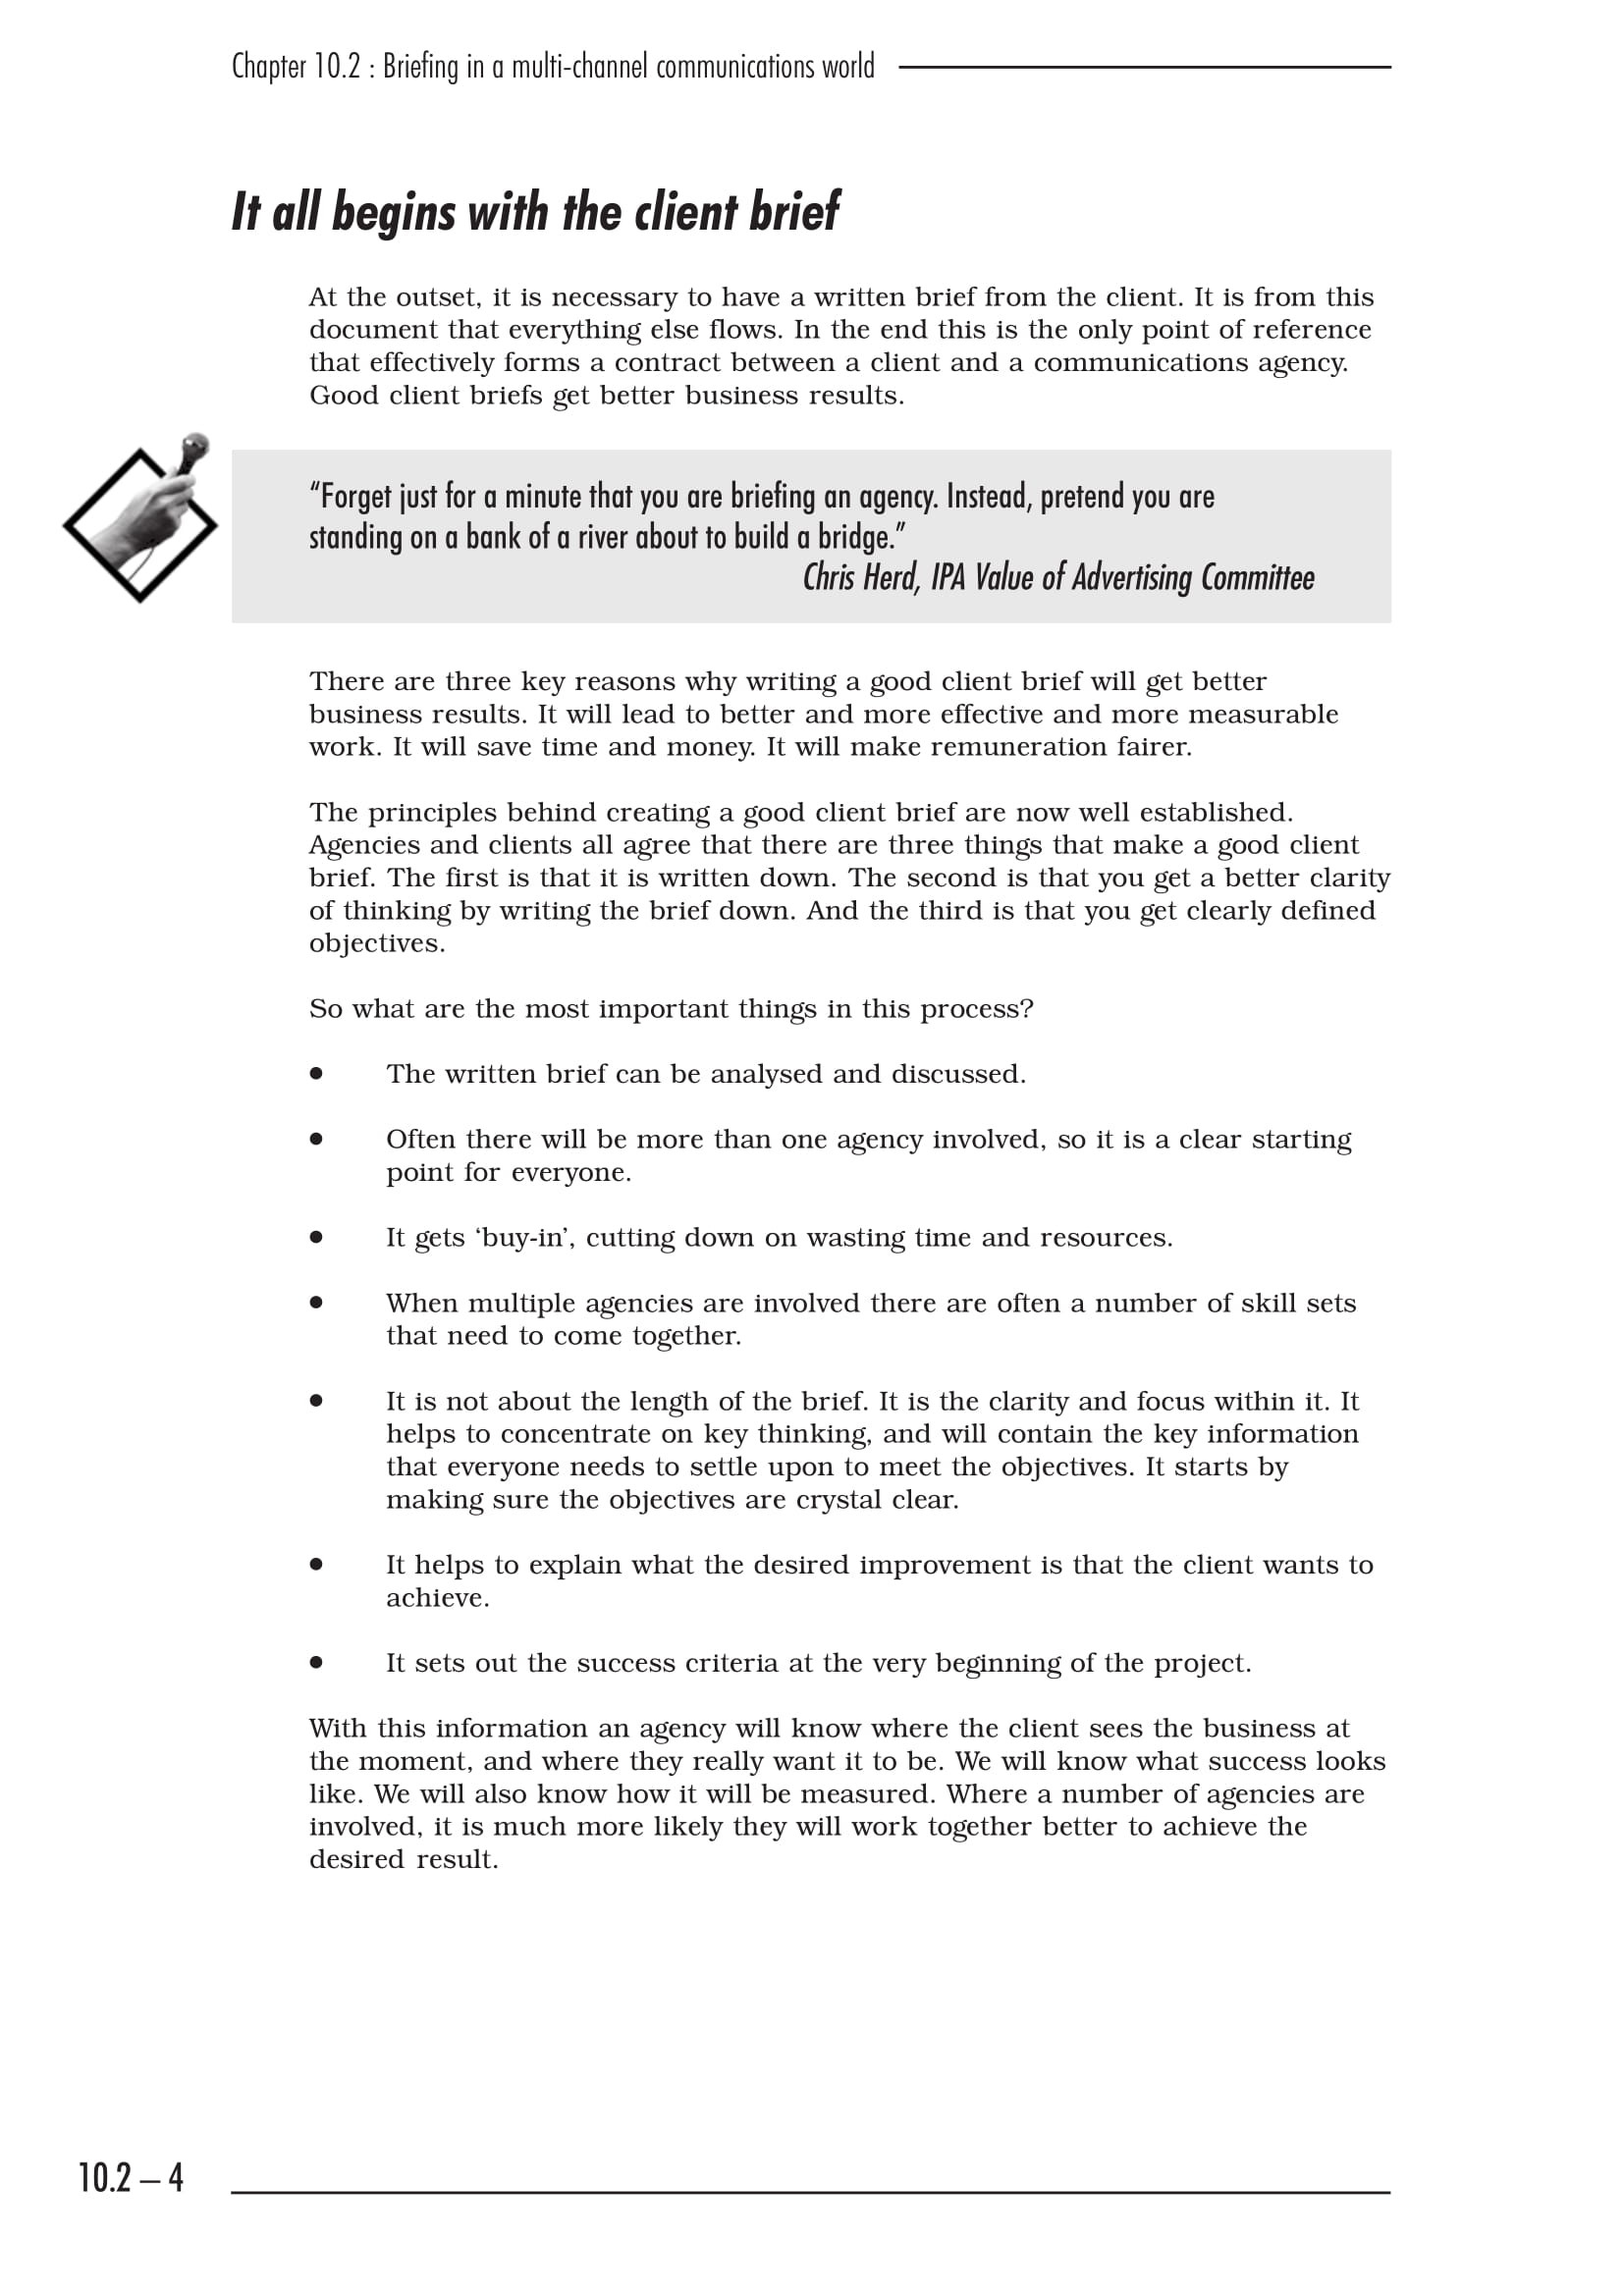 Policy Brief Template Download